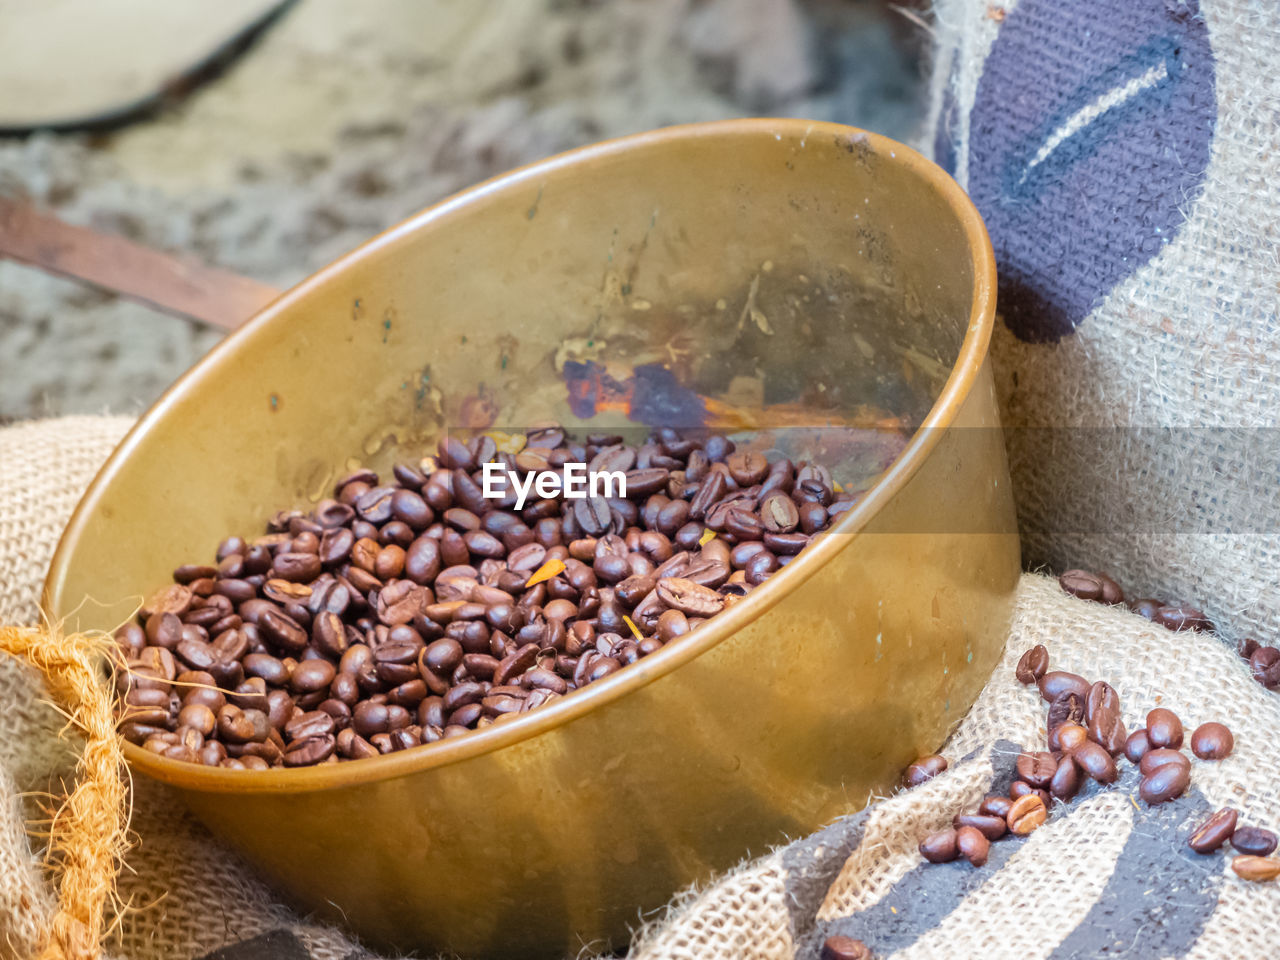 roasted coffee bean, food and drink, coffee - drink, close-up, coffee, food, freshness, no people, brown, high angle view, large group of objects, sack, focus on foreground, still life, day, table, nature, refreshment, outdoors, caffeine